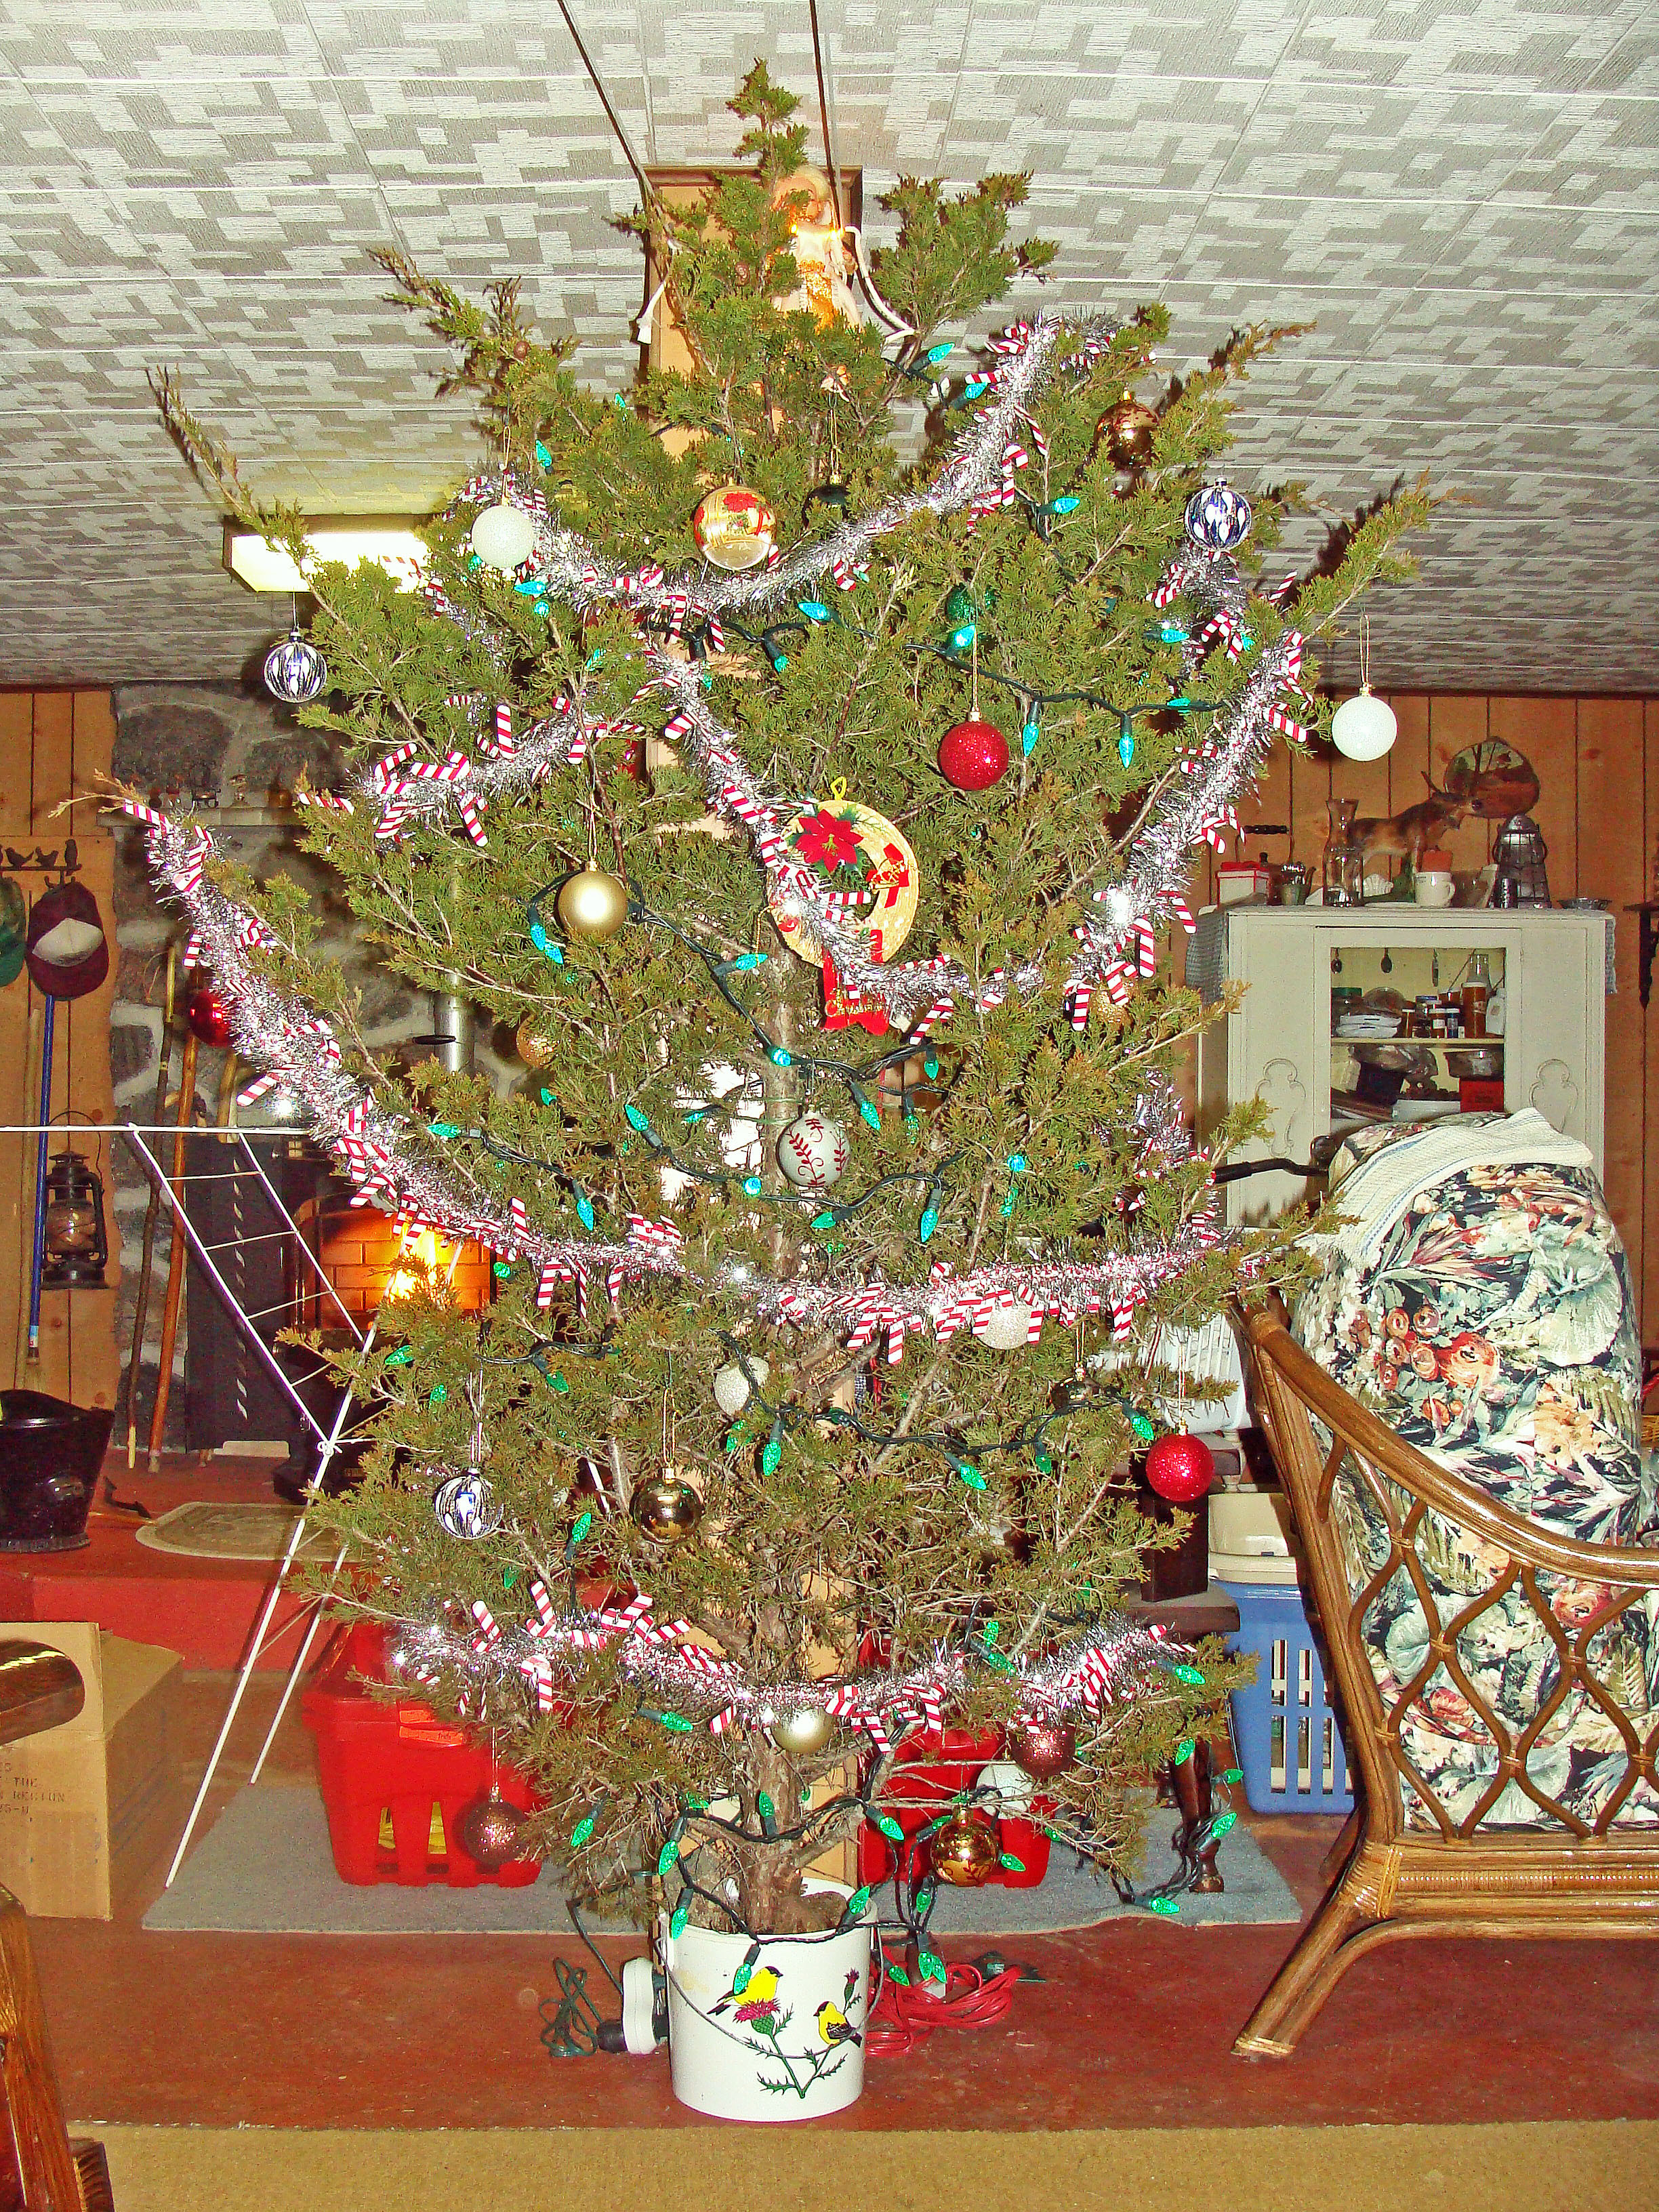 Old Fashioned Christmas Tree Inspirational Dreaming Of An Old Fashioned Christmas Prince Edward Of Amazing 43 Photos Old Fashioned Christmas Tree